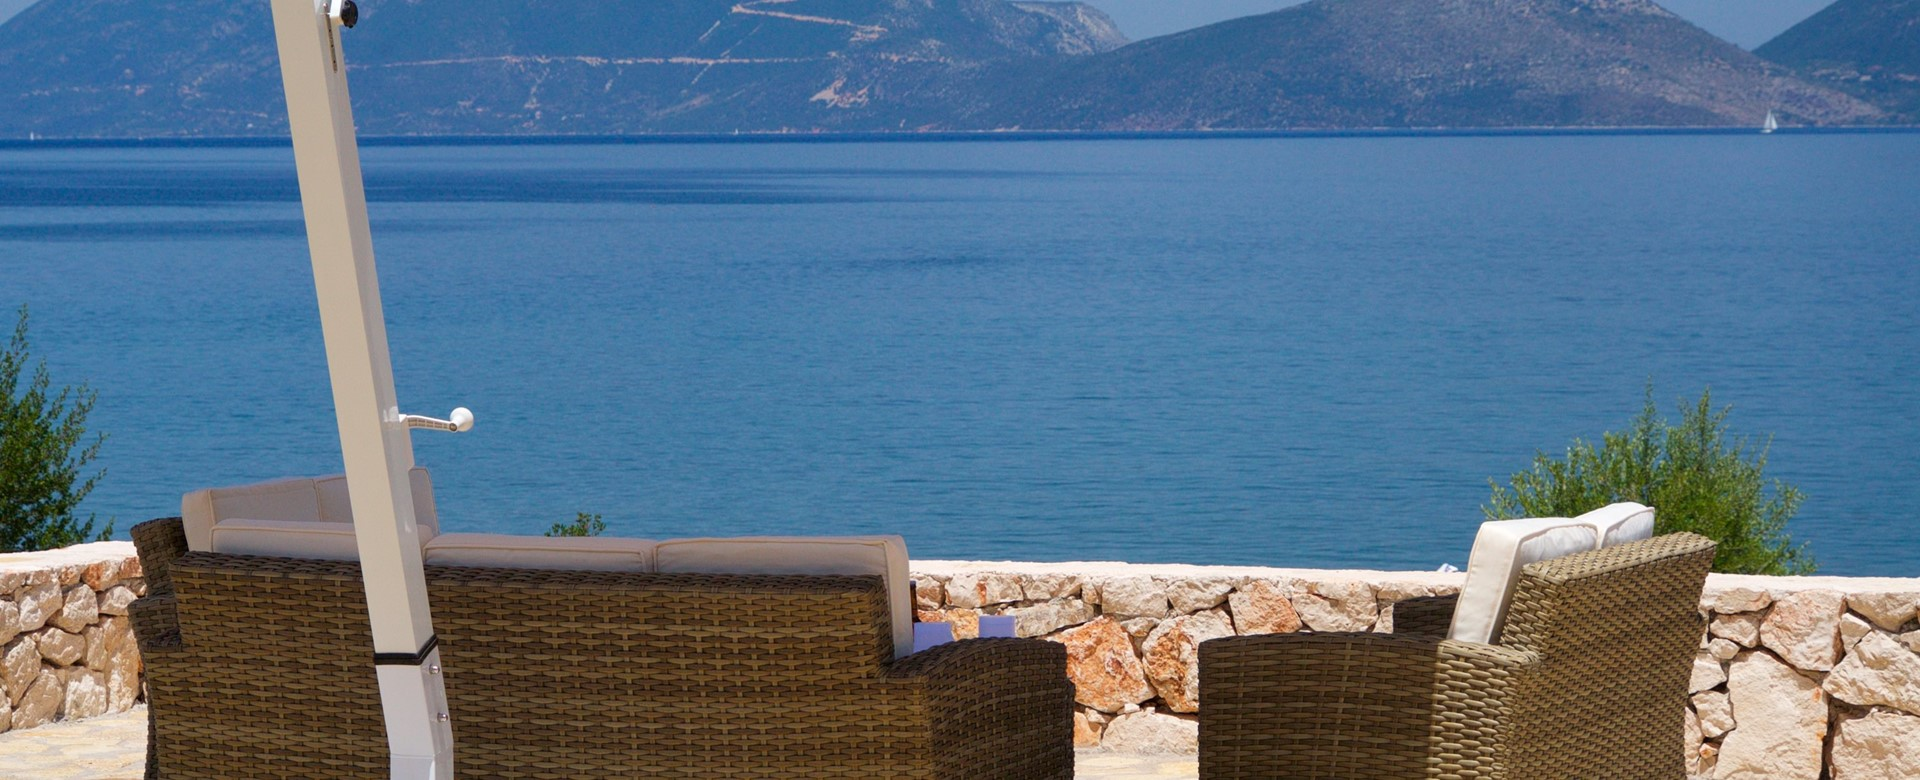 Take in the coastline views from the comfortable and shaded outside seating in Villa Frydi, Karavomilos, Kefalonia, Greek Islands